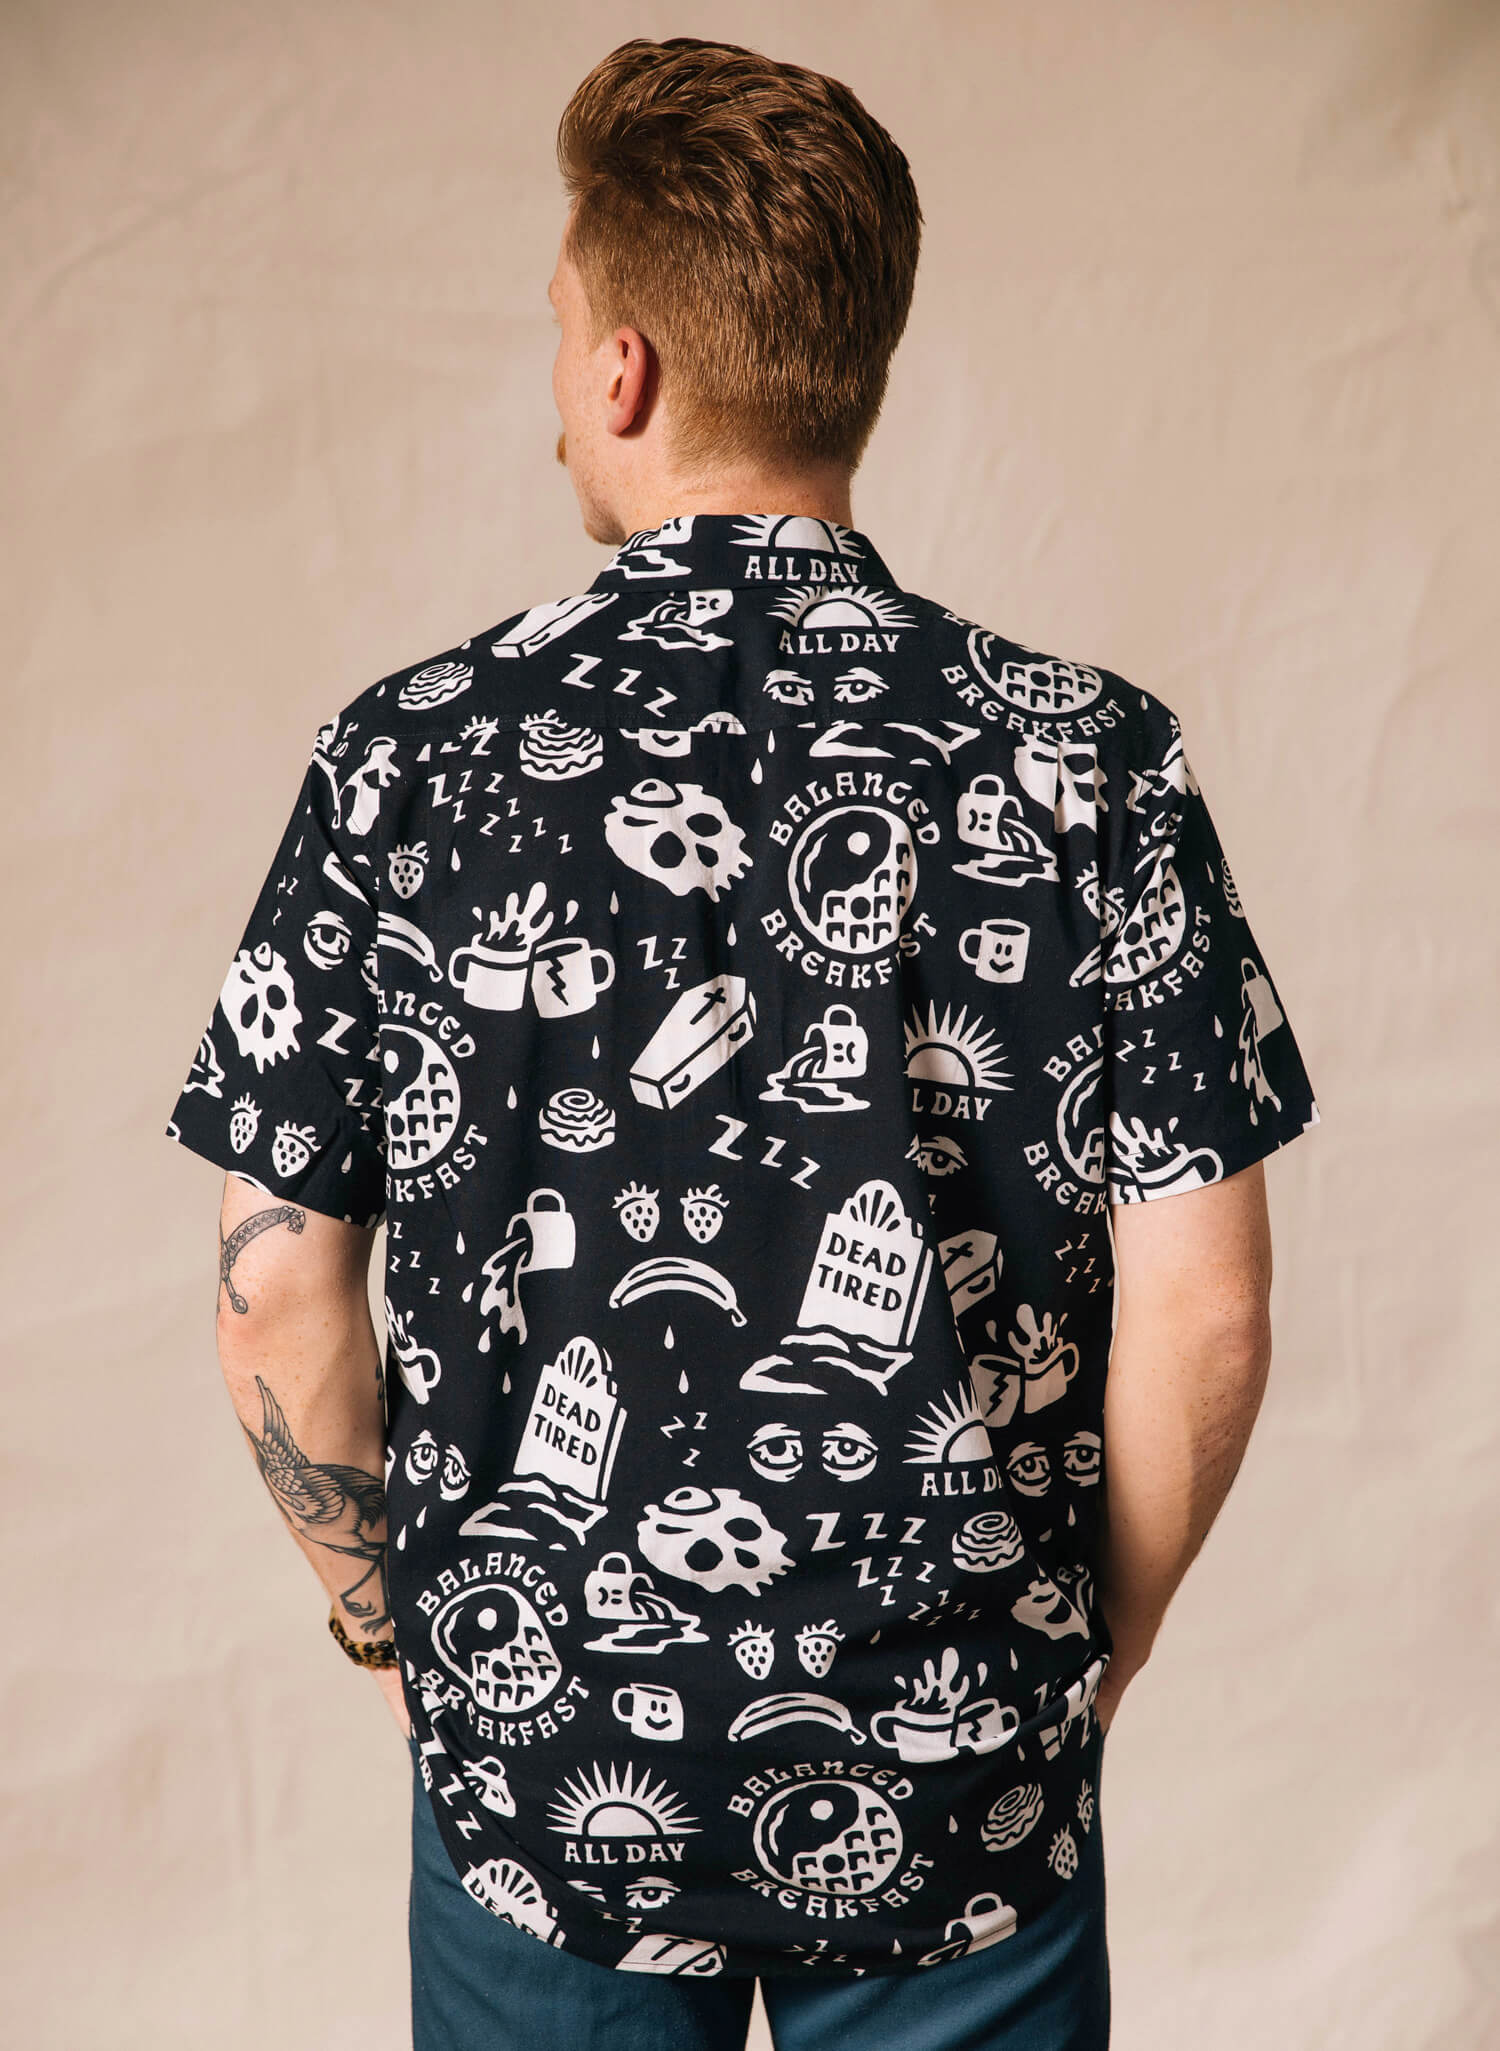 Pyknic Dead Tired Breakfast Coffee Cofin Skulls Mens Casual Buttonup Shirt Hawaiian Vacation Button Down Graphic Top